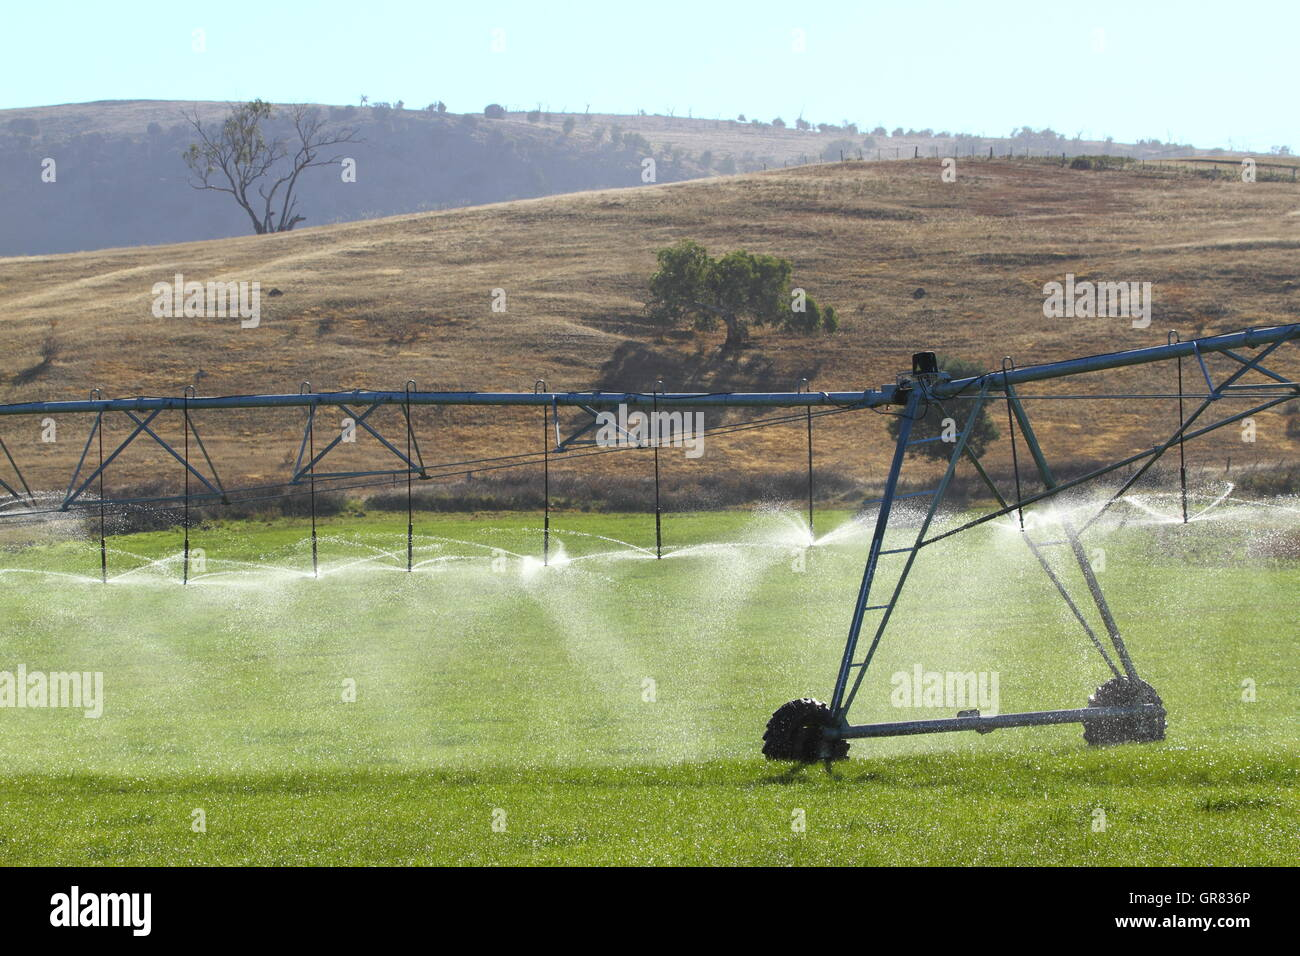 A pivot irrigation system watering a crop in Ouse, Tasmania, Australia, - Stock Image